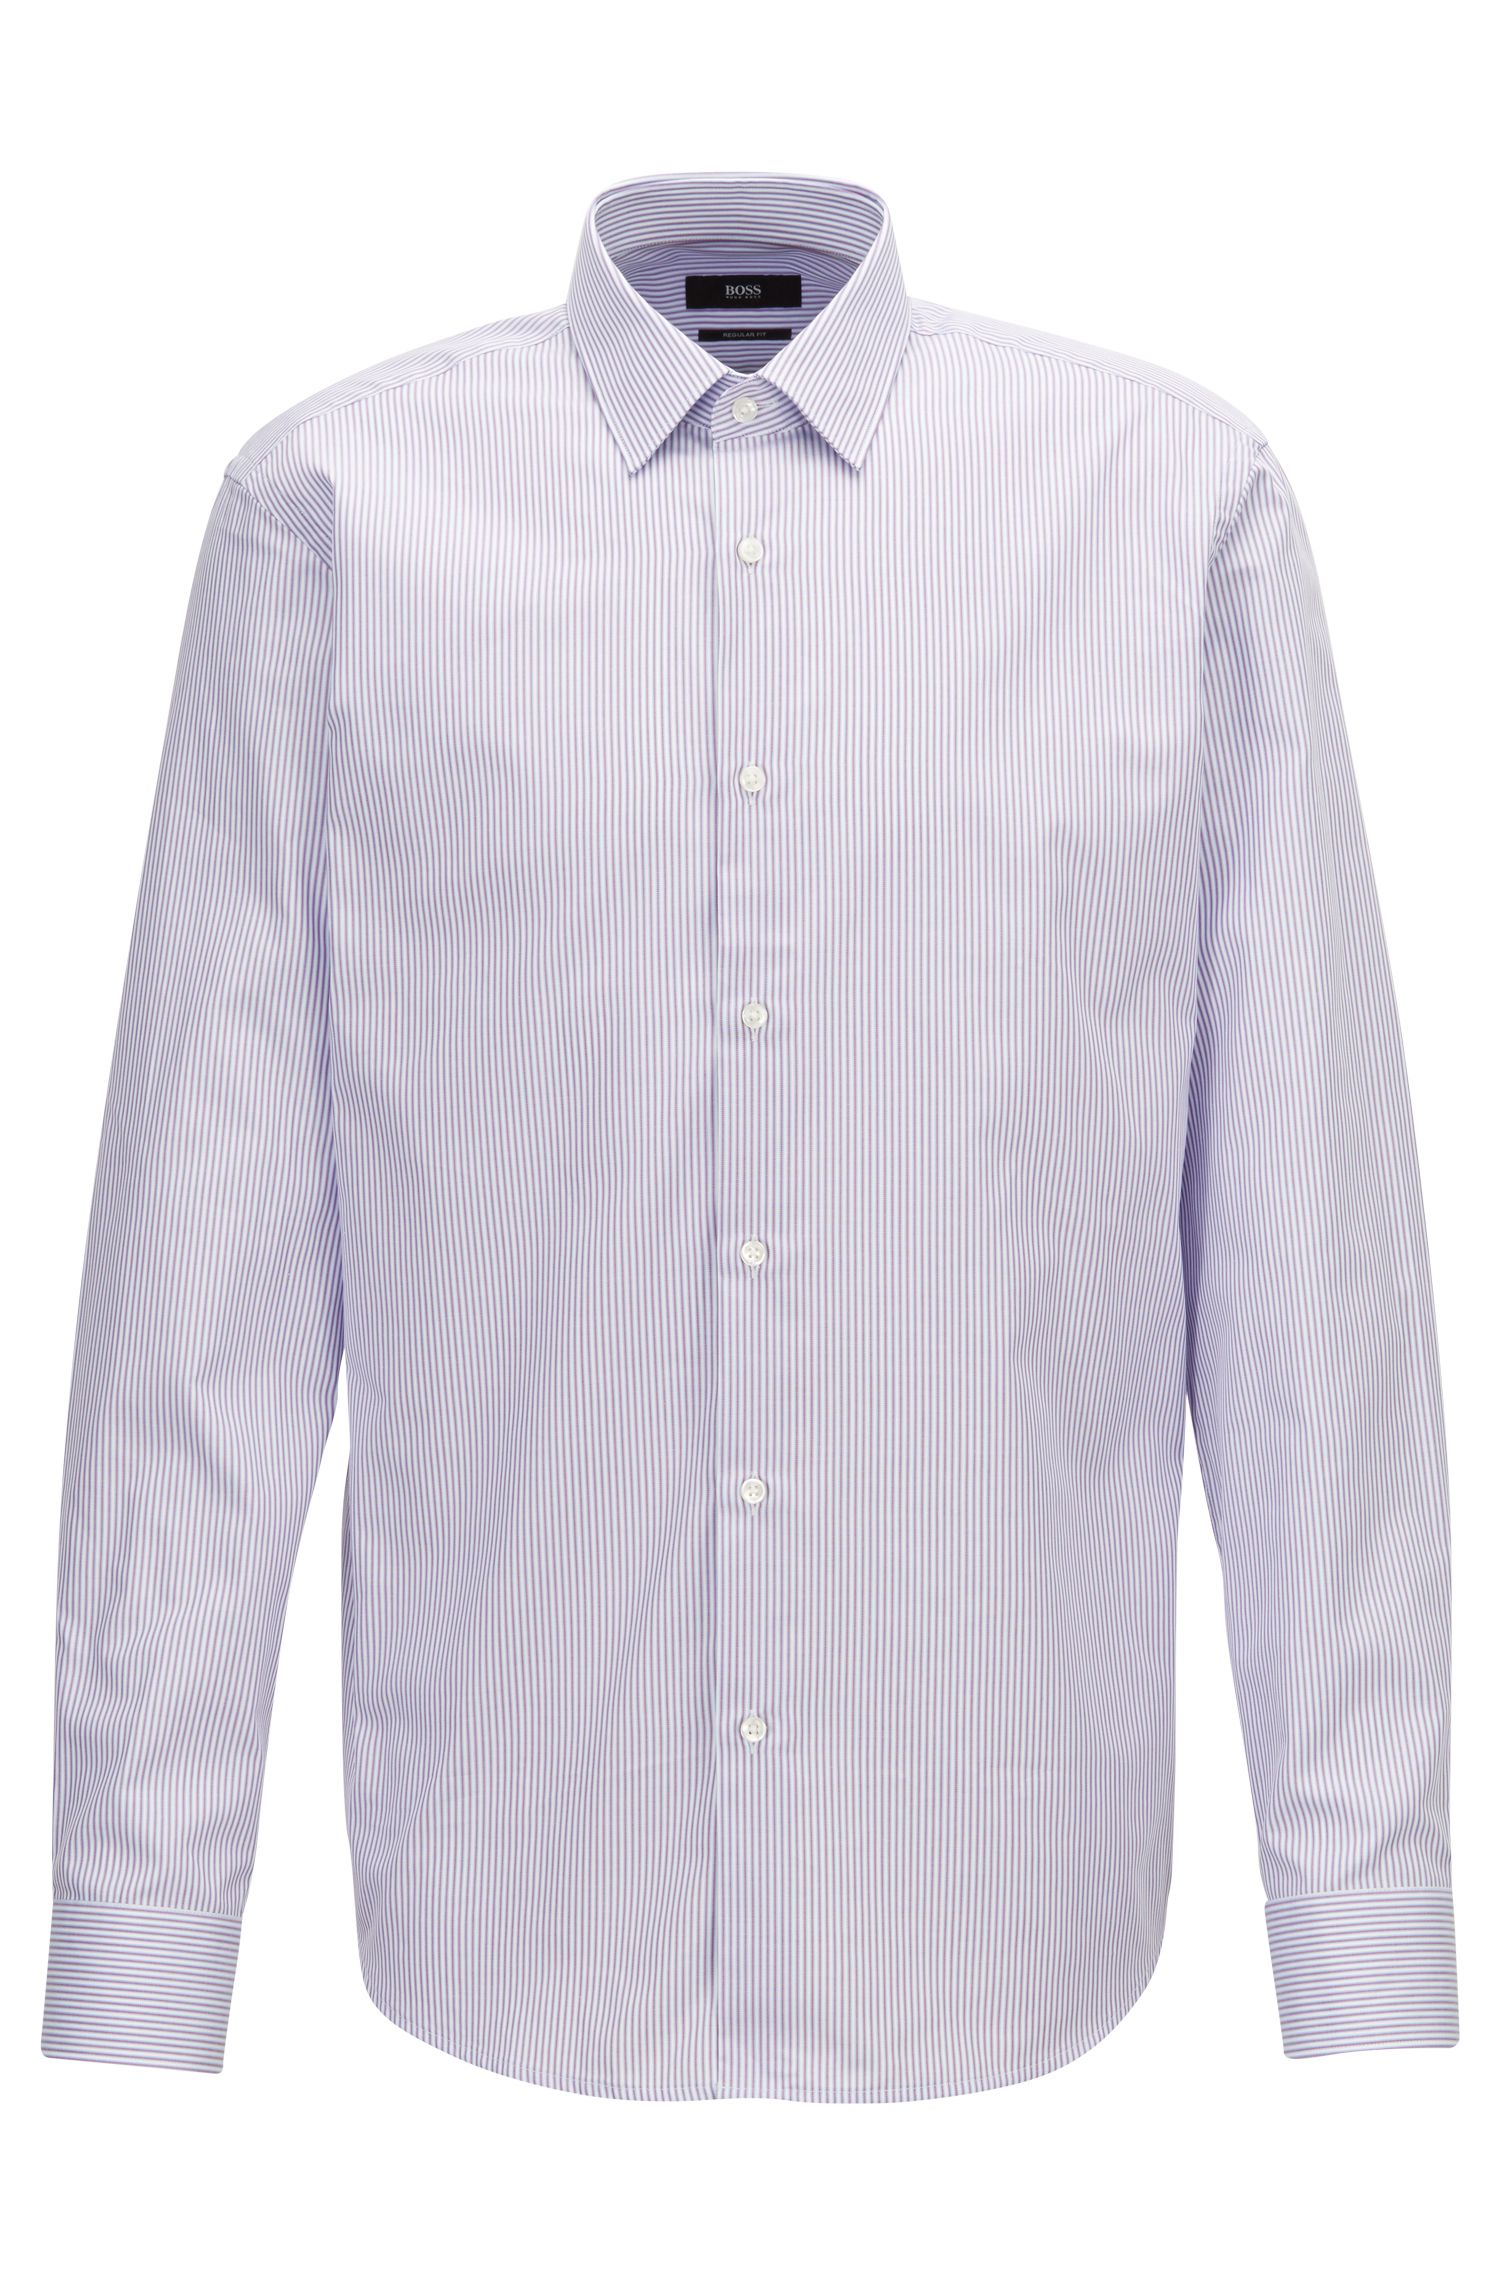 Two-colour striped shirt in pure Oxford cotton